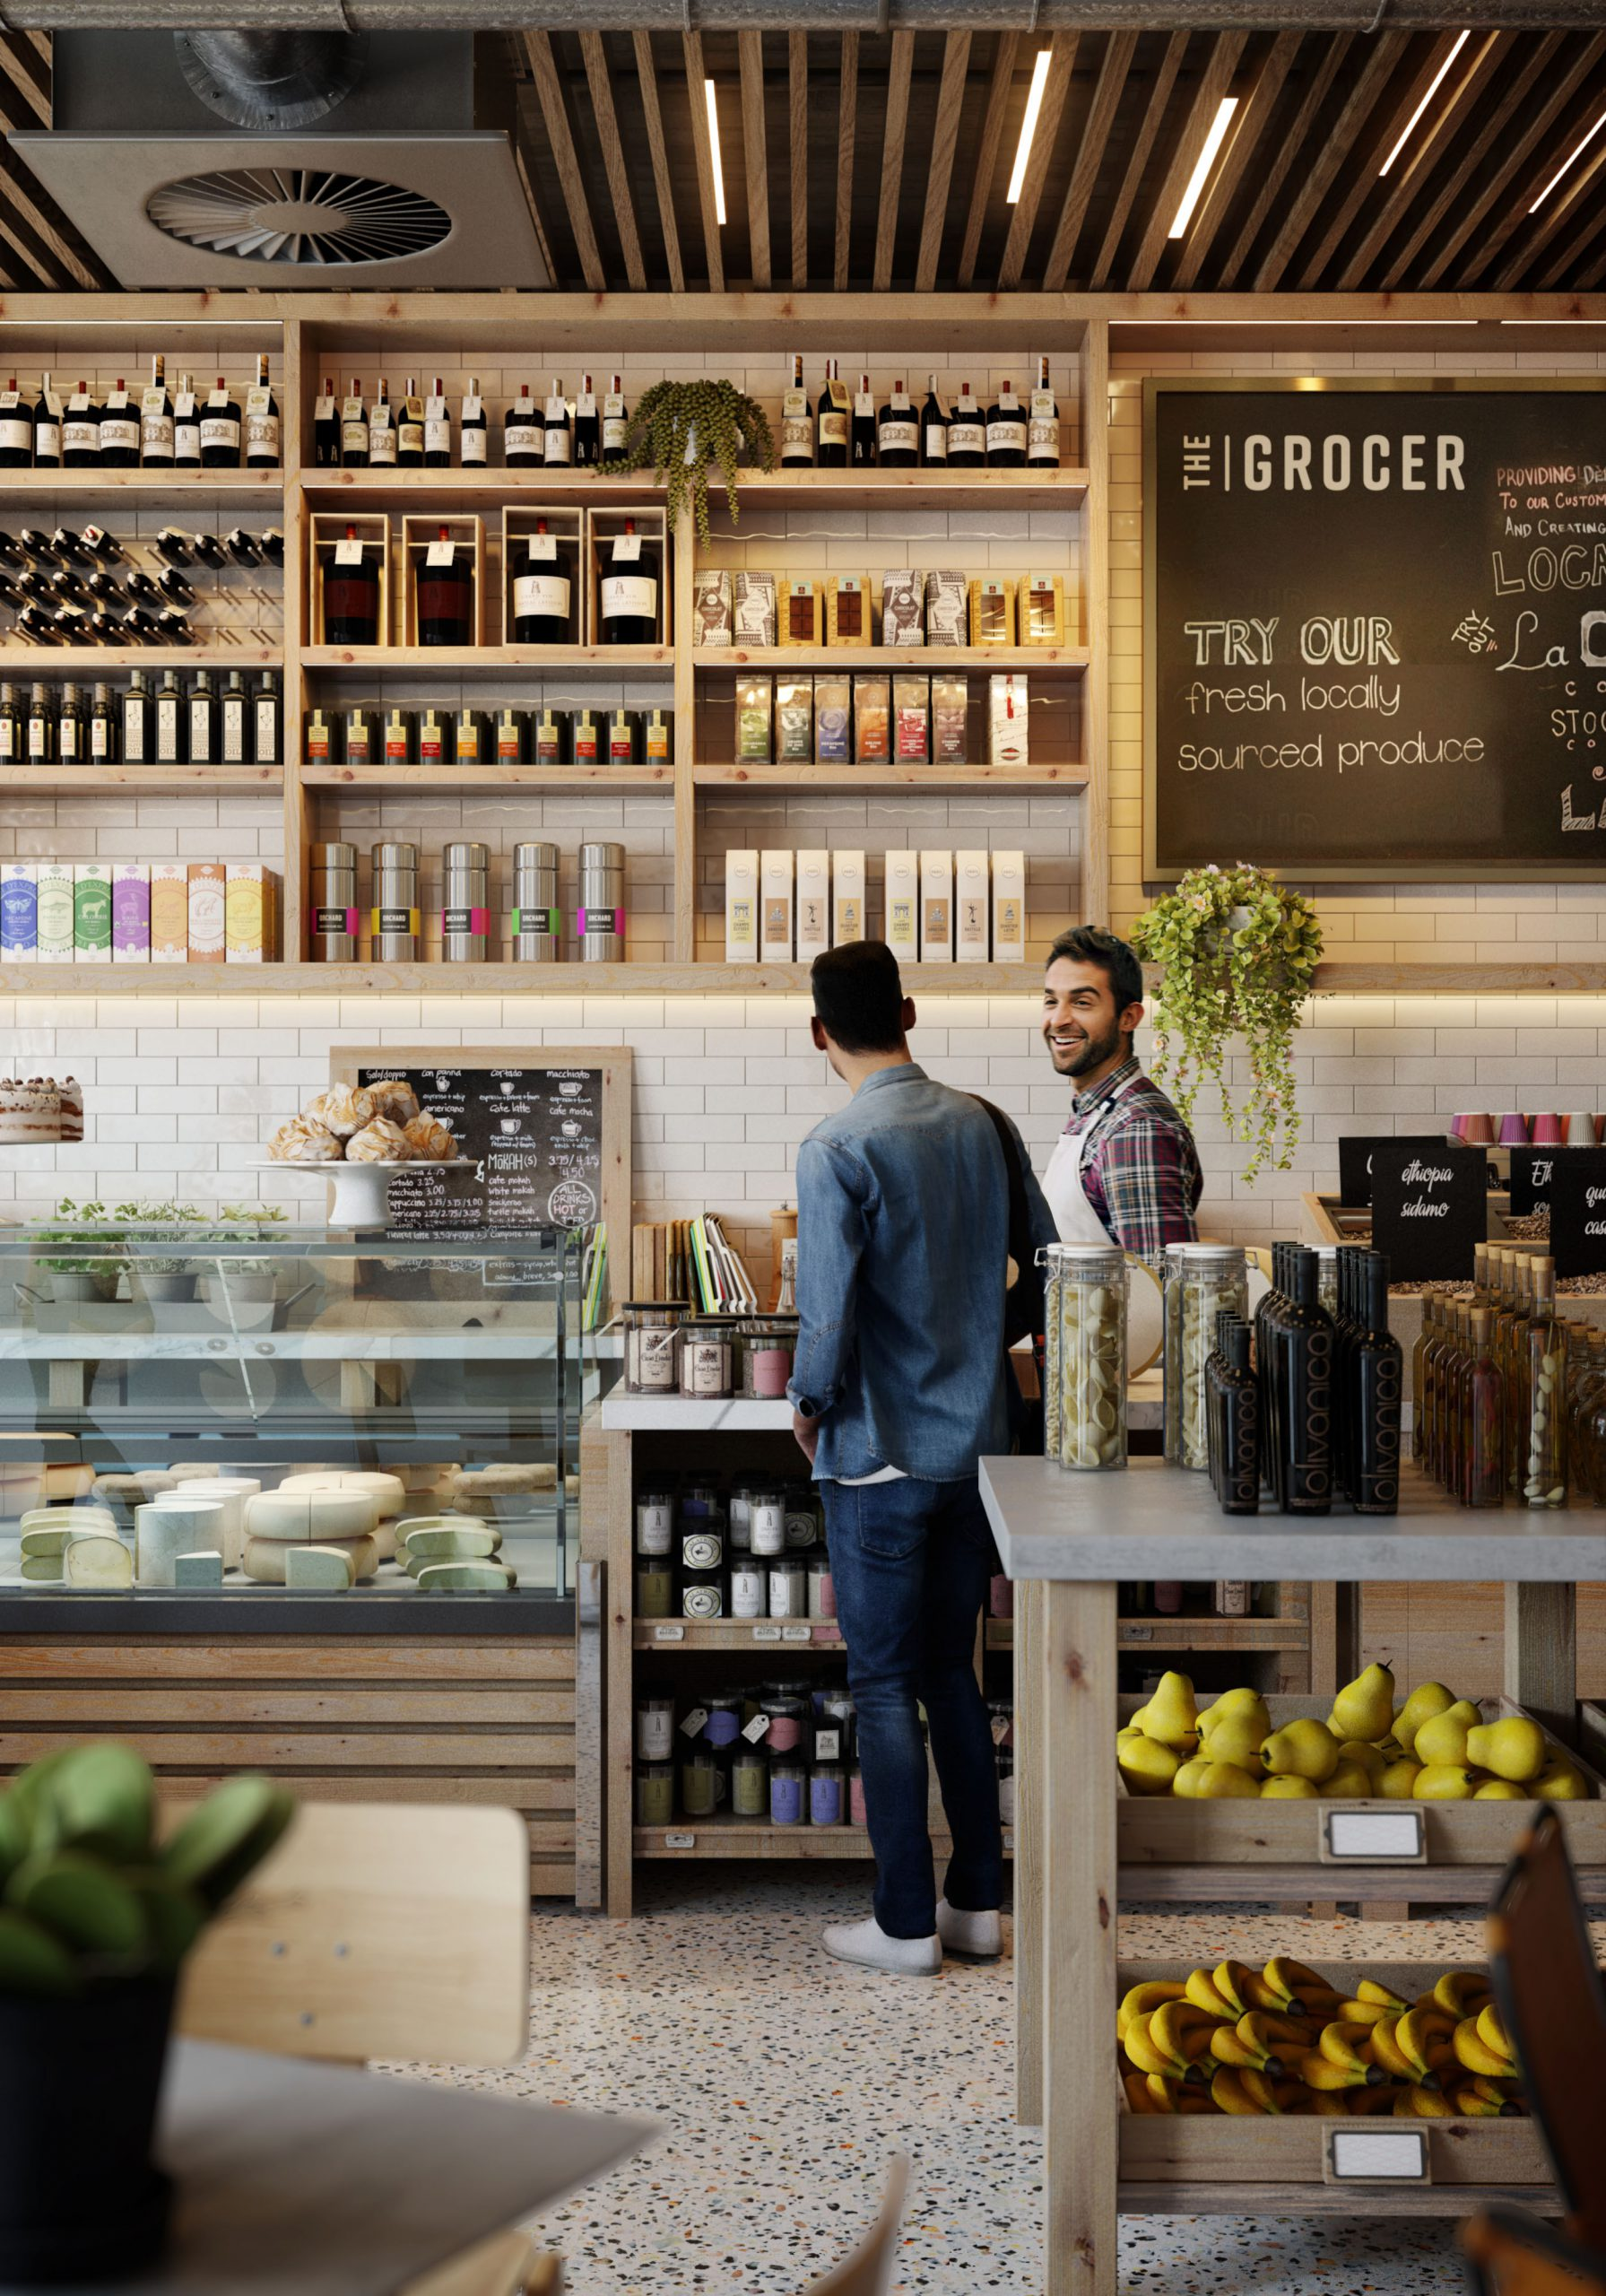 OXBOW GROCER